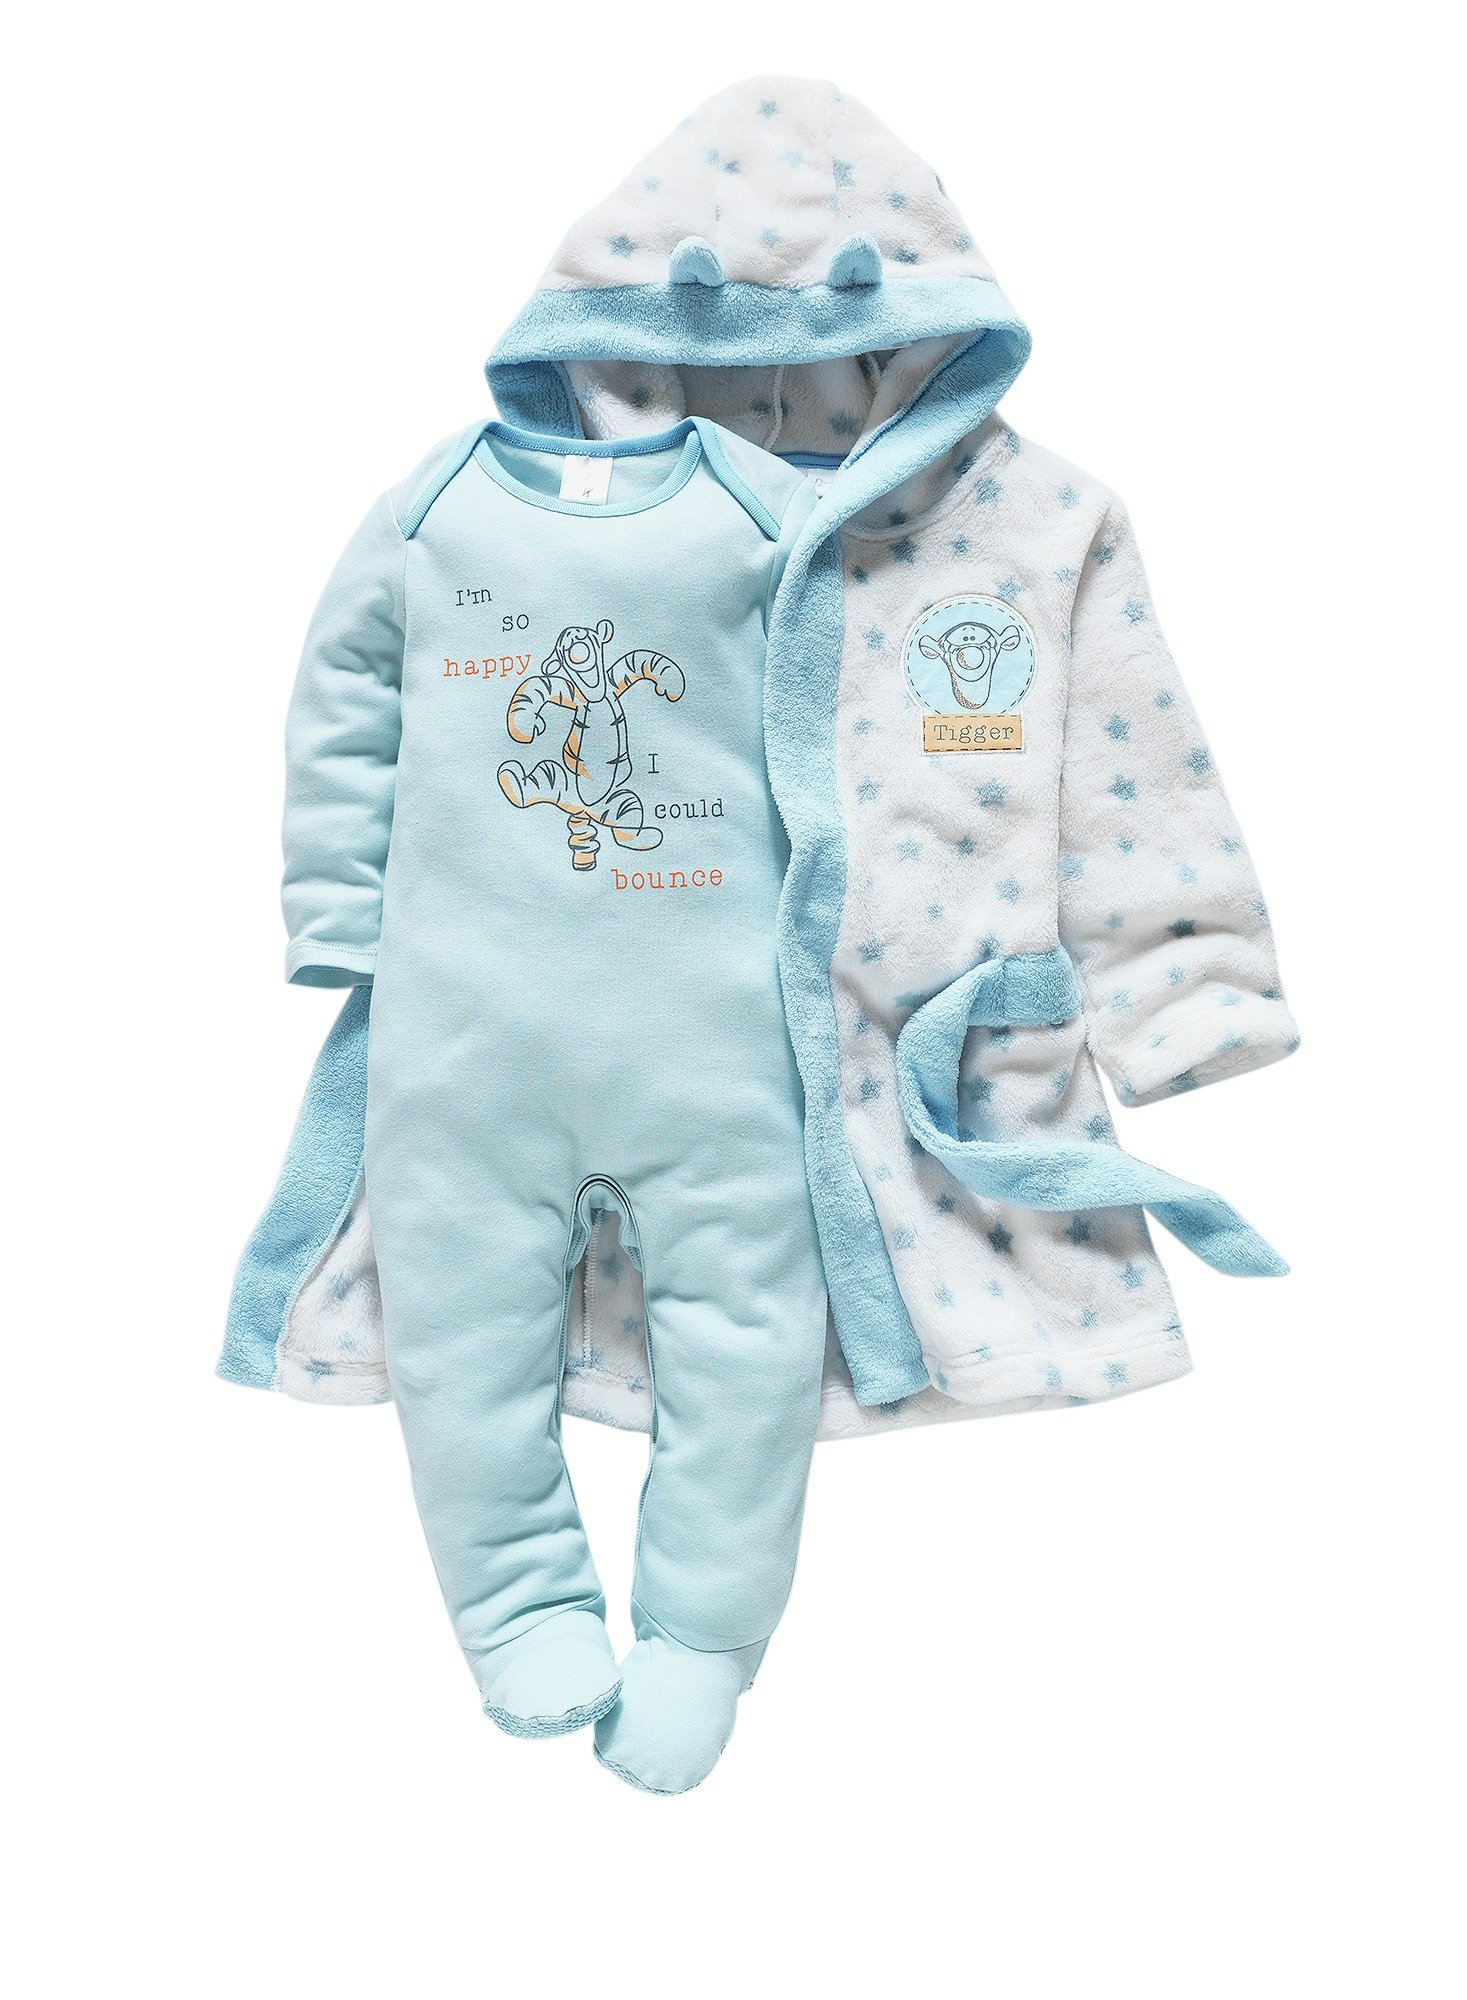 Image of Tigger - Baby Blue Gown and Pyjama Set - 12-18 Months